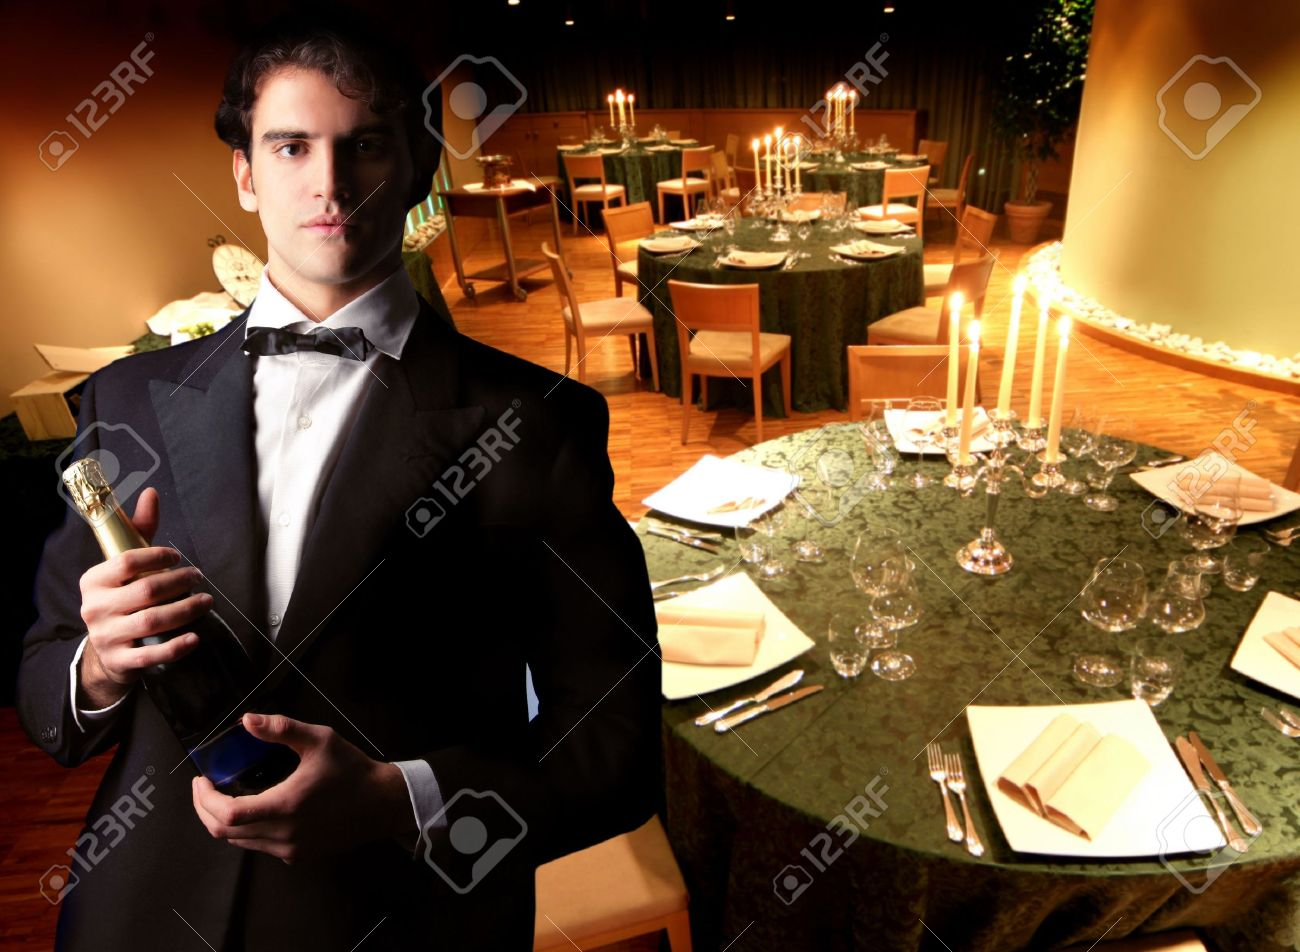 Waiter With Champagne Bottle In A Romantic Dining Room Stock Photo ...